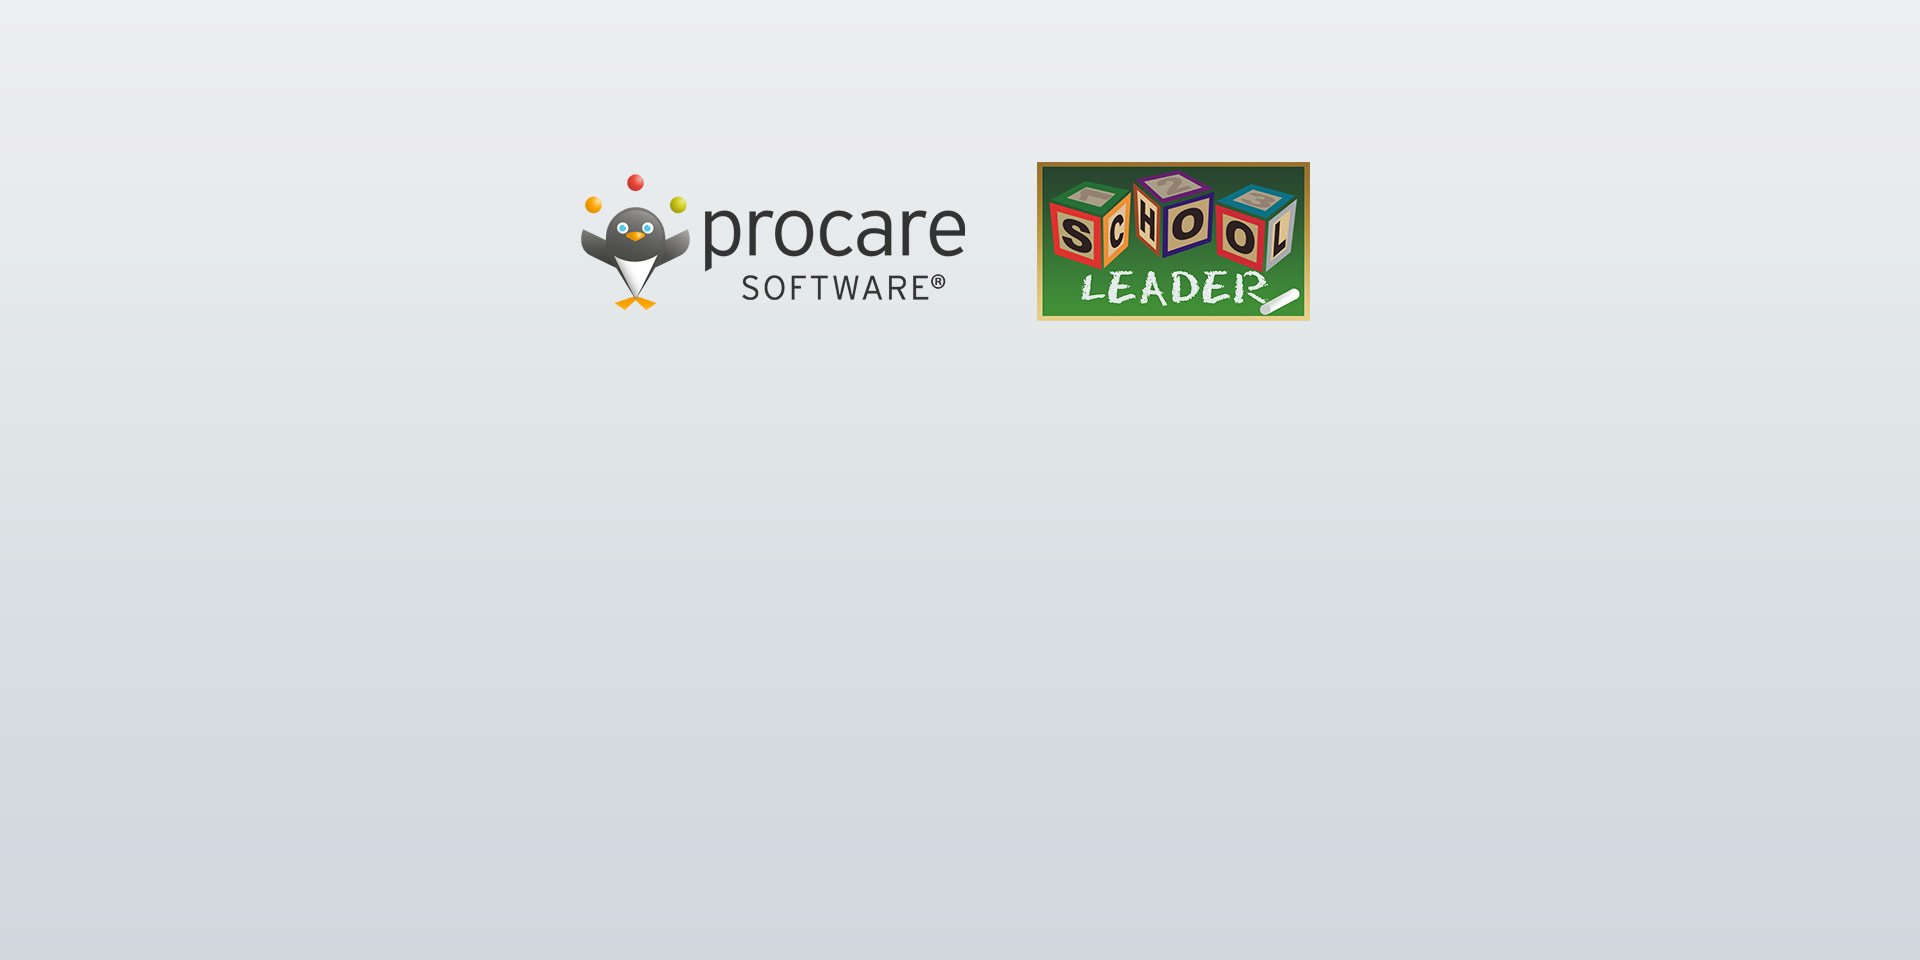 Procare Software Announces Acquisition of SchoolLeader